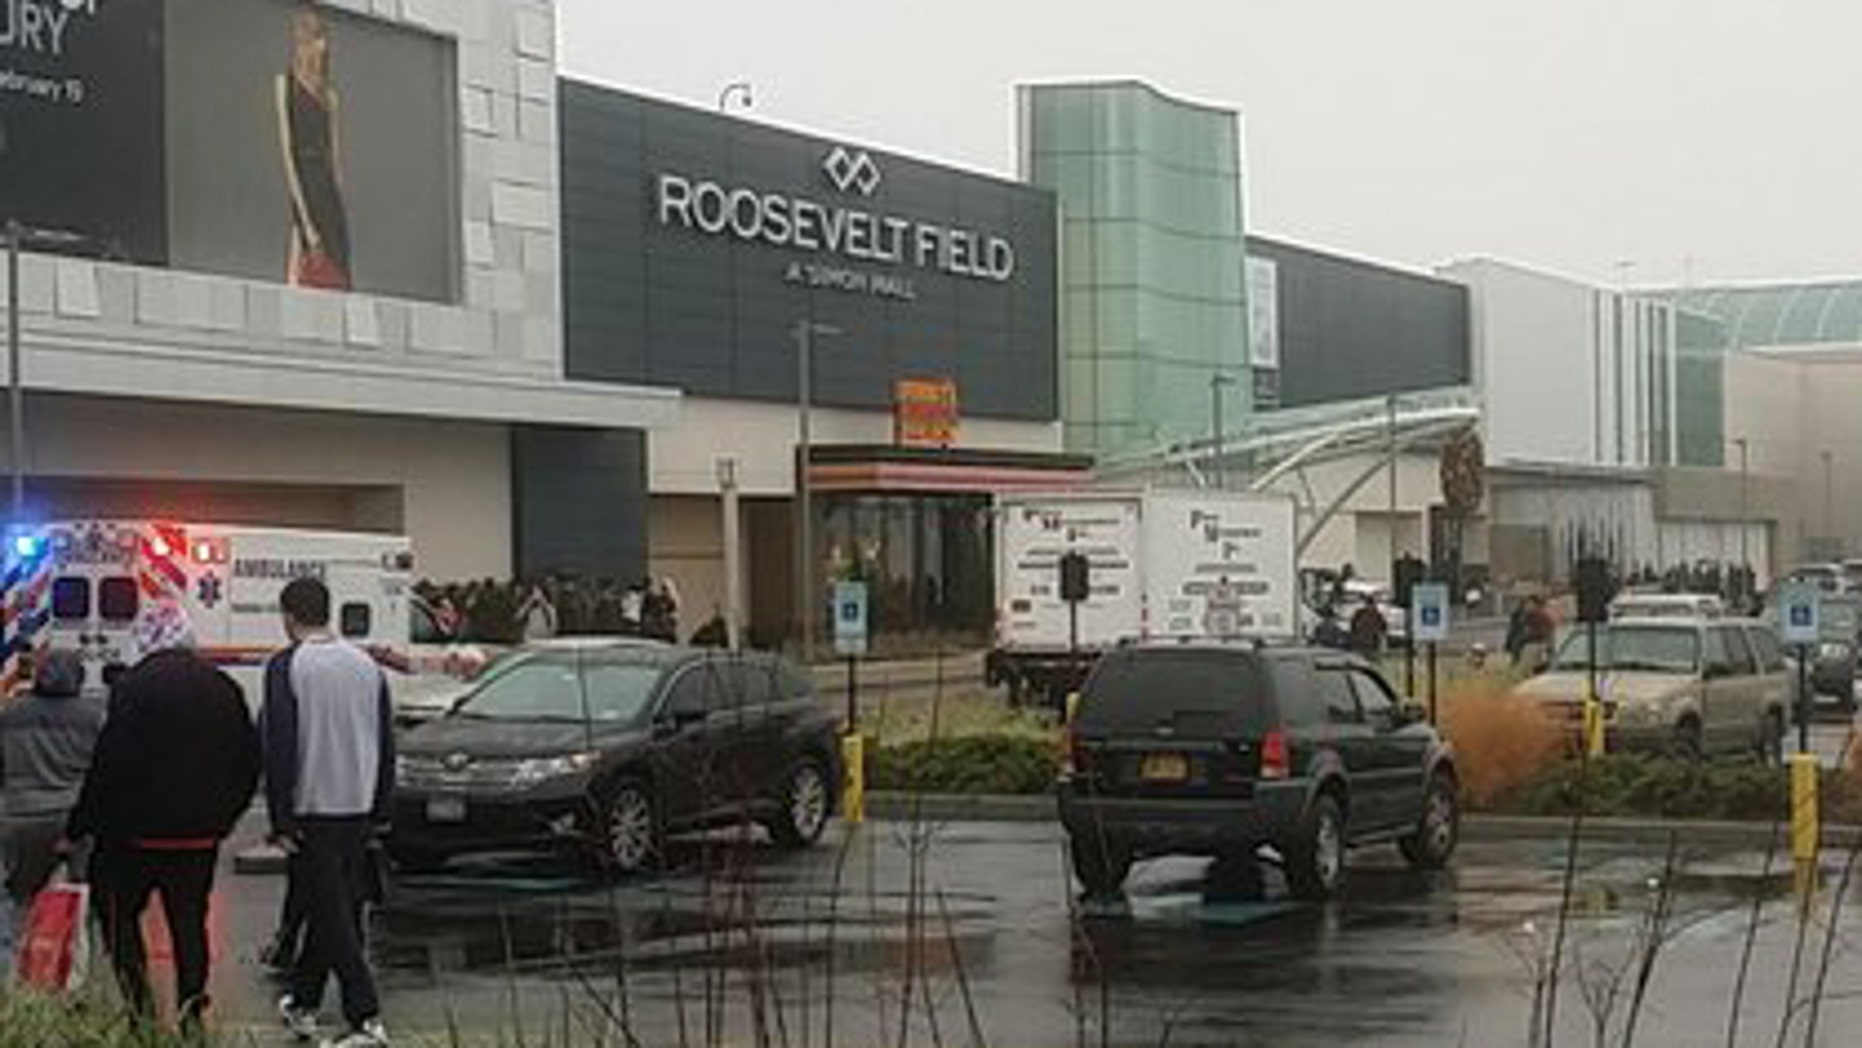 The scene outside Roosevelt Field Mall on Tuesday afternoon.